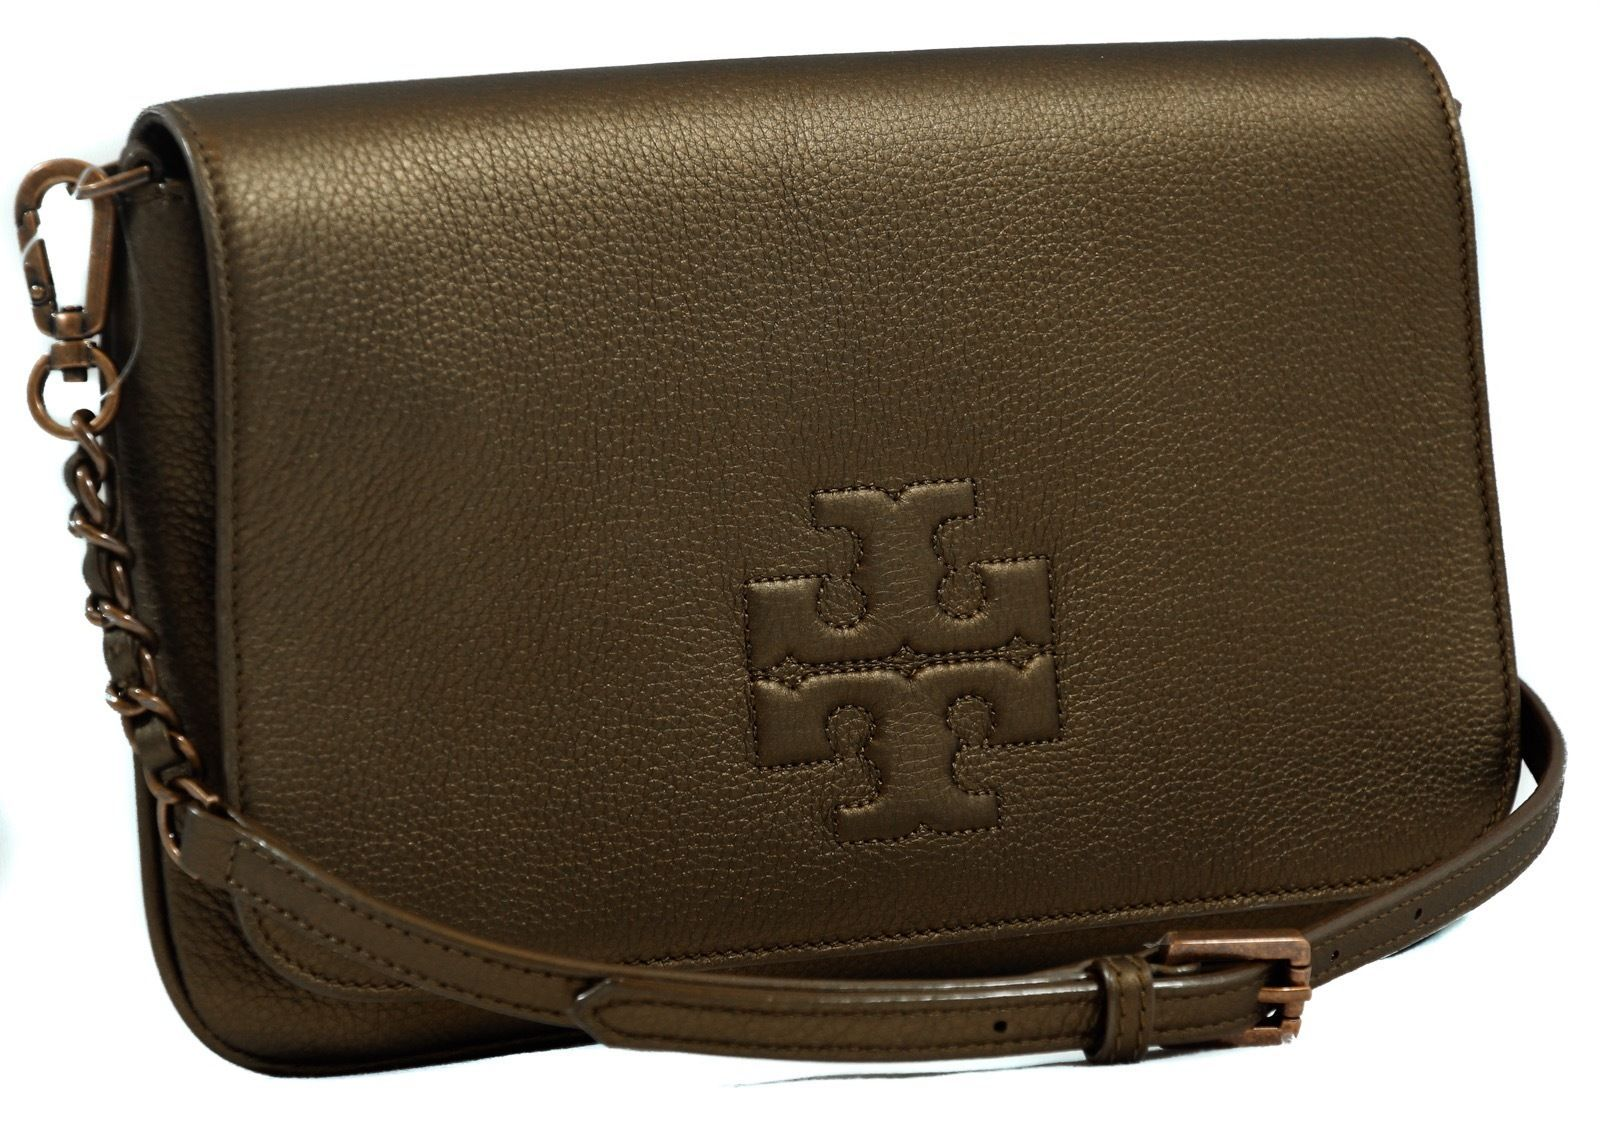 Primary image for NWT TORY BURCH Thea Foldover Crossbody Clutch Bag, Bronze